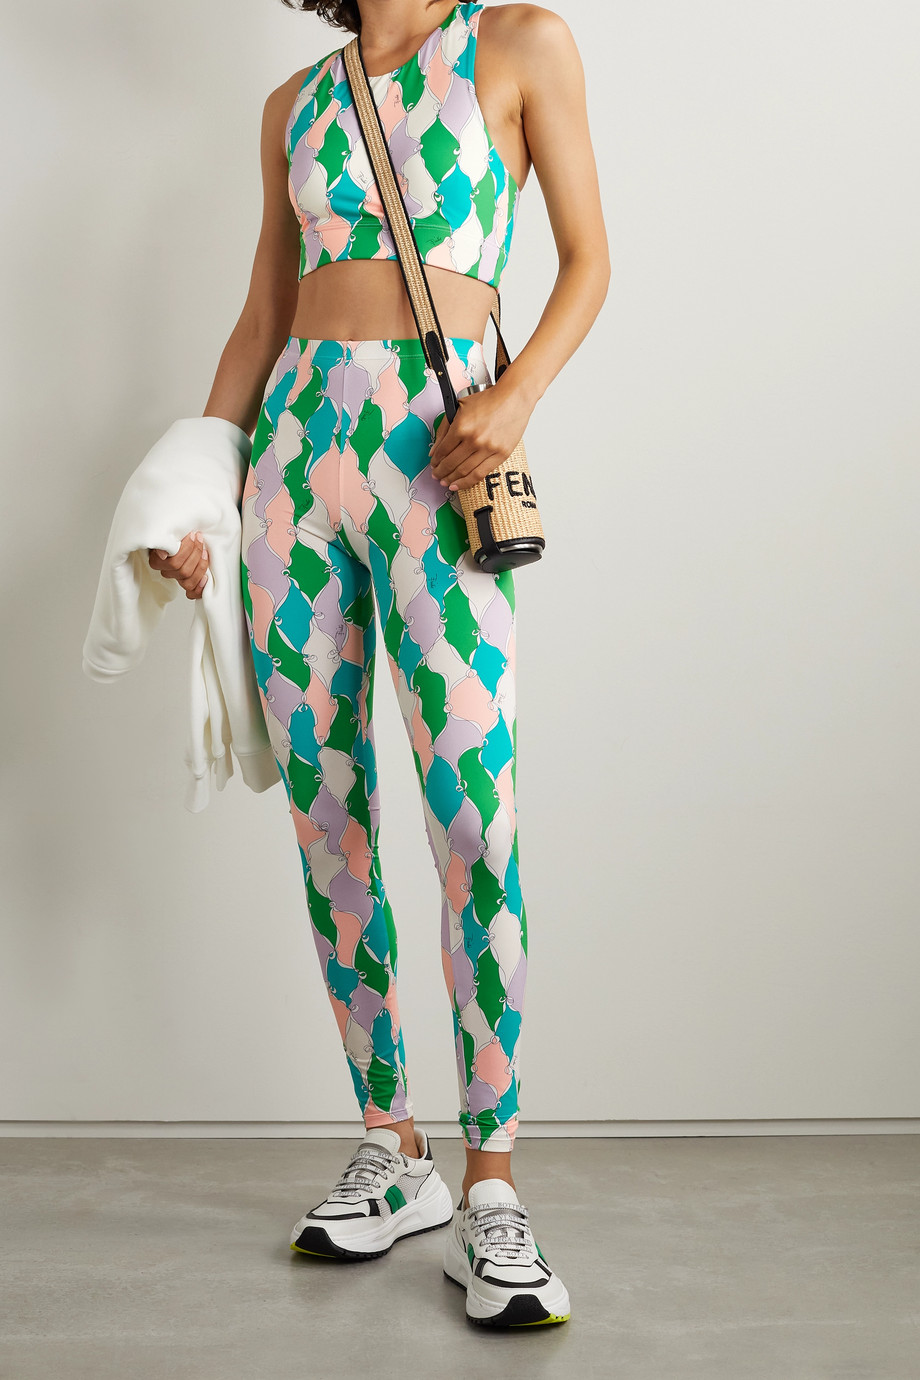 Emilio Pucci + NET SUSTAIN printed recycled stretch leggings